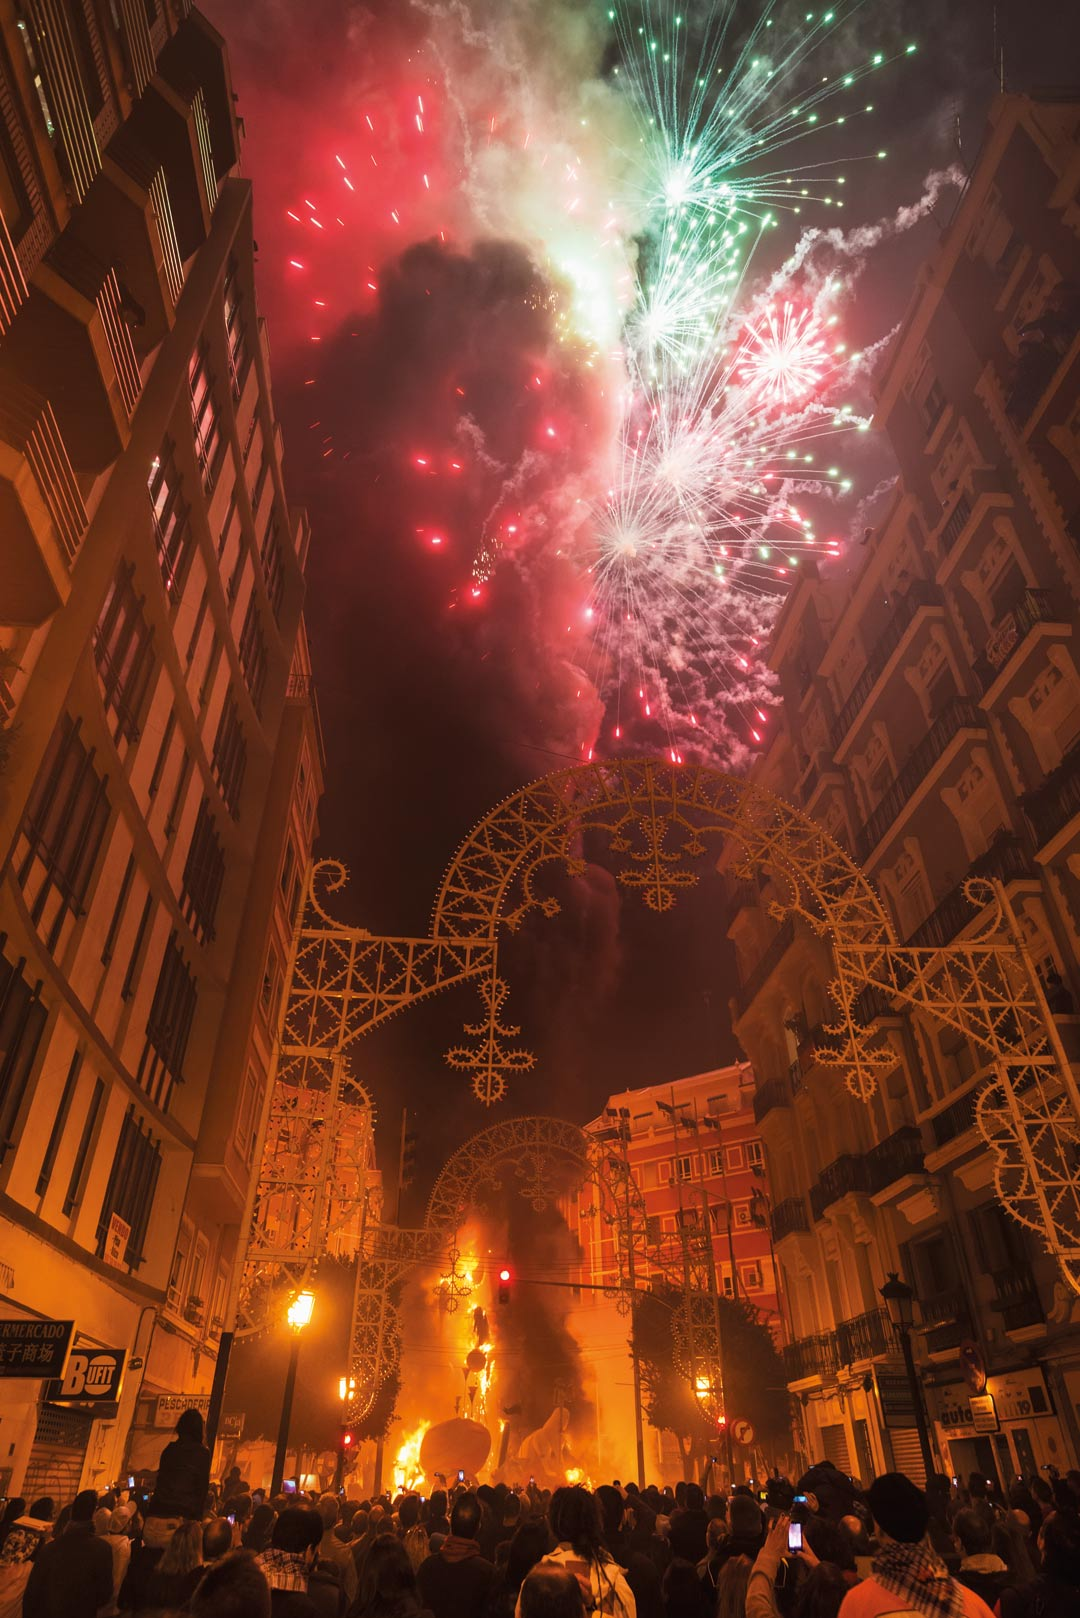 A falla goes up in flames around midnight on March 19, at the close of Valencia's biggest annual festival.